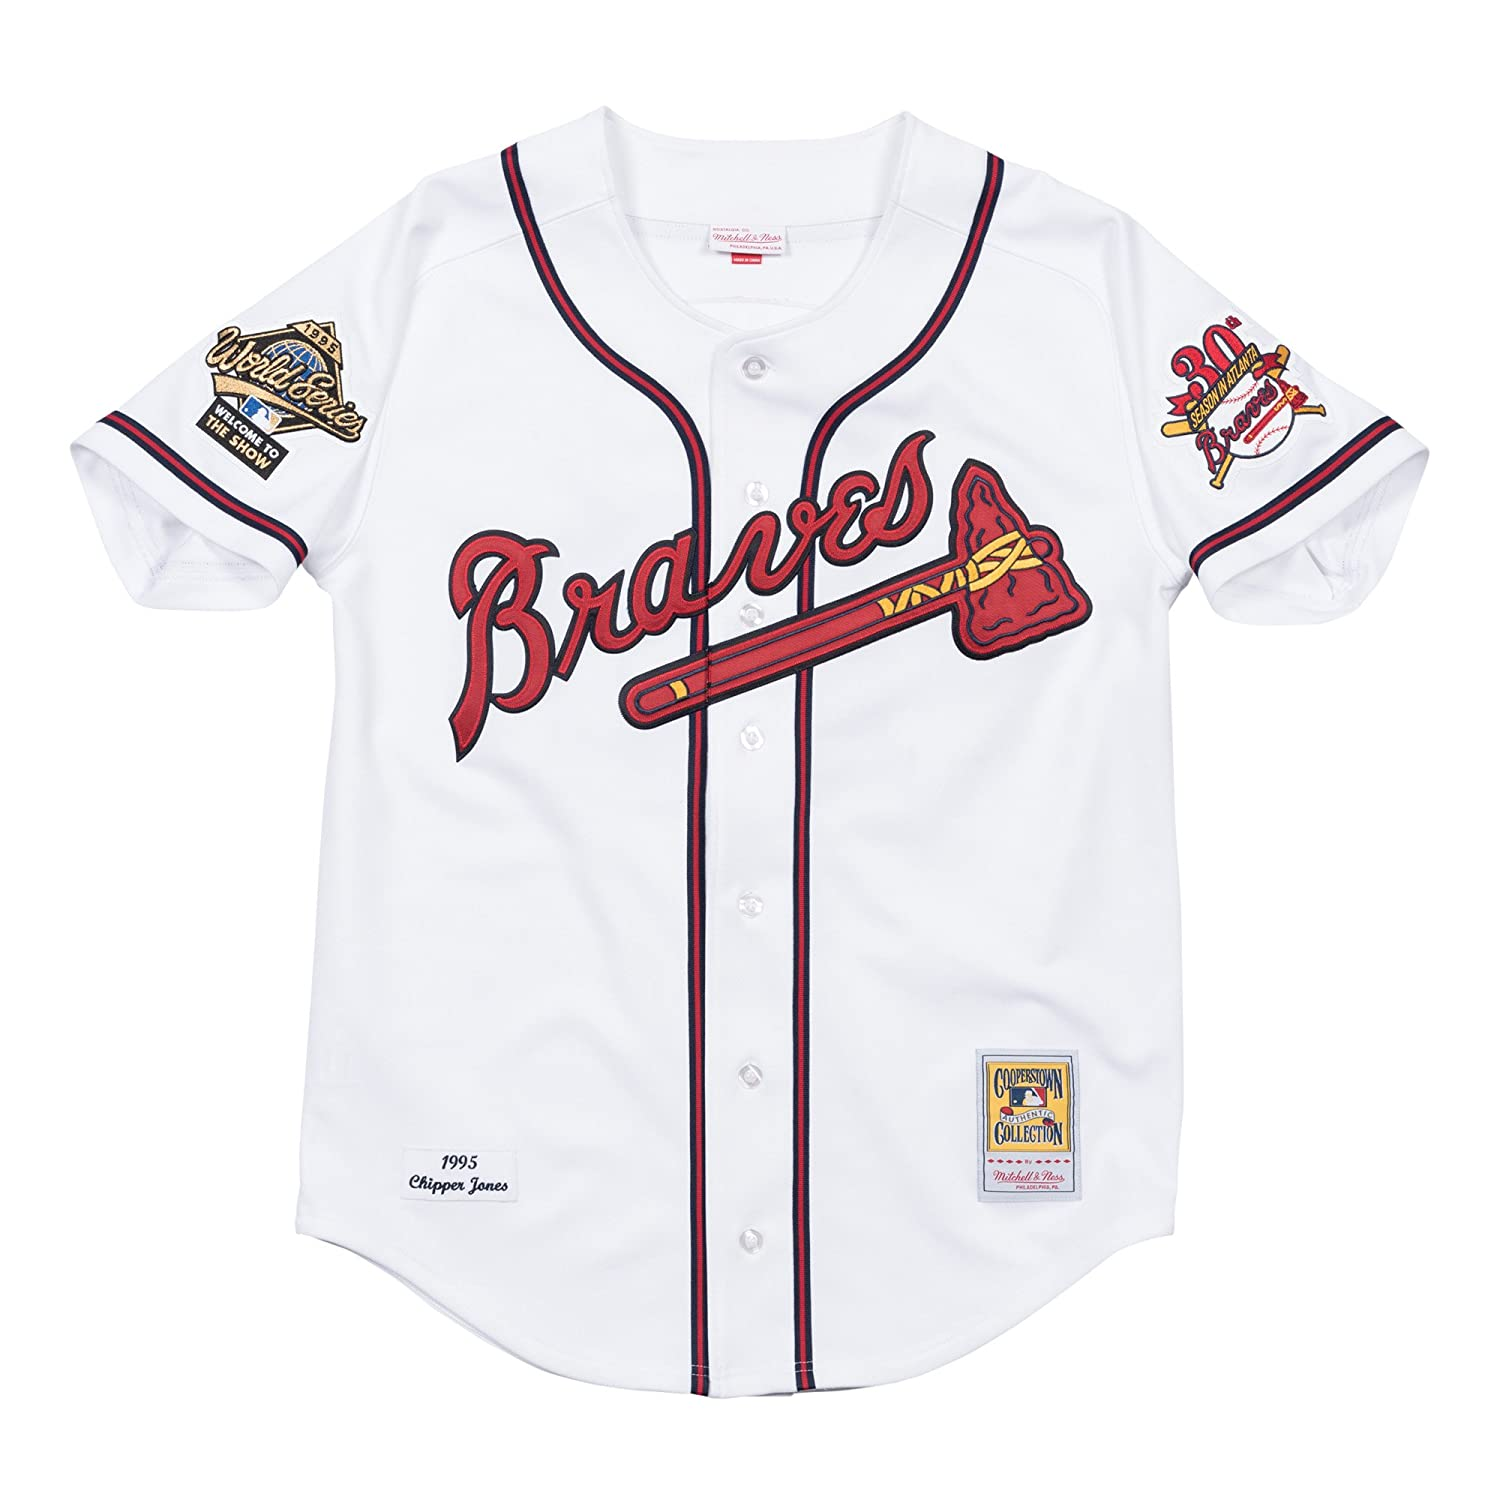 brand new 6527f 3dfe2 Mitchell & Ness Chipper Jones Atlanta Braves MLB Authentic 1995 Home WS  Jersey